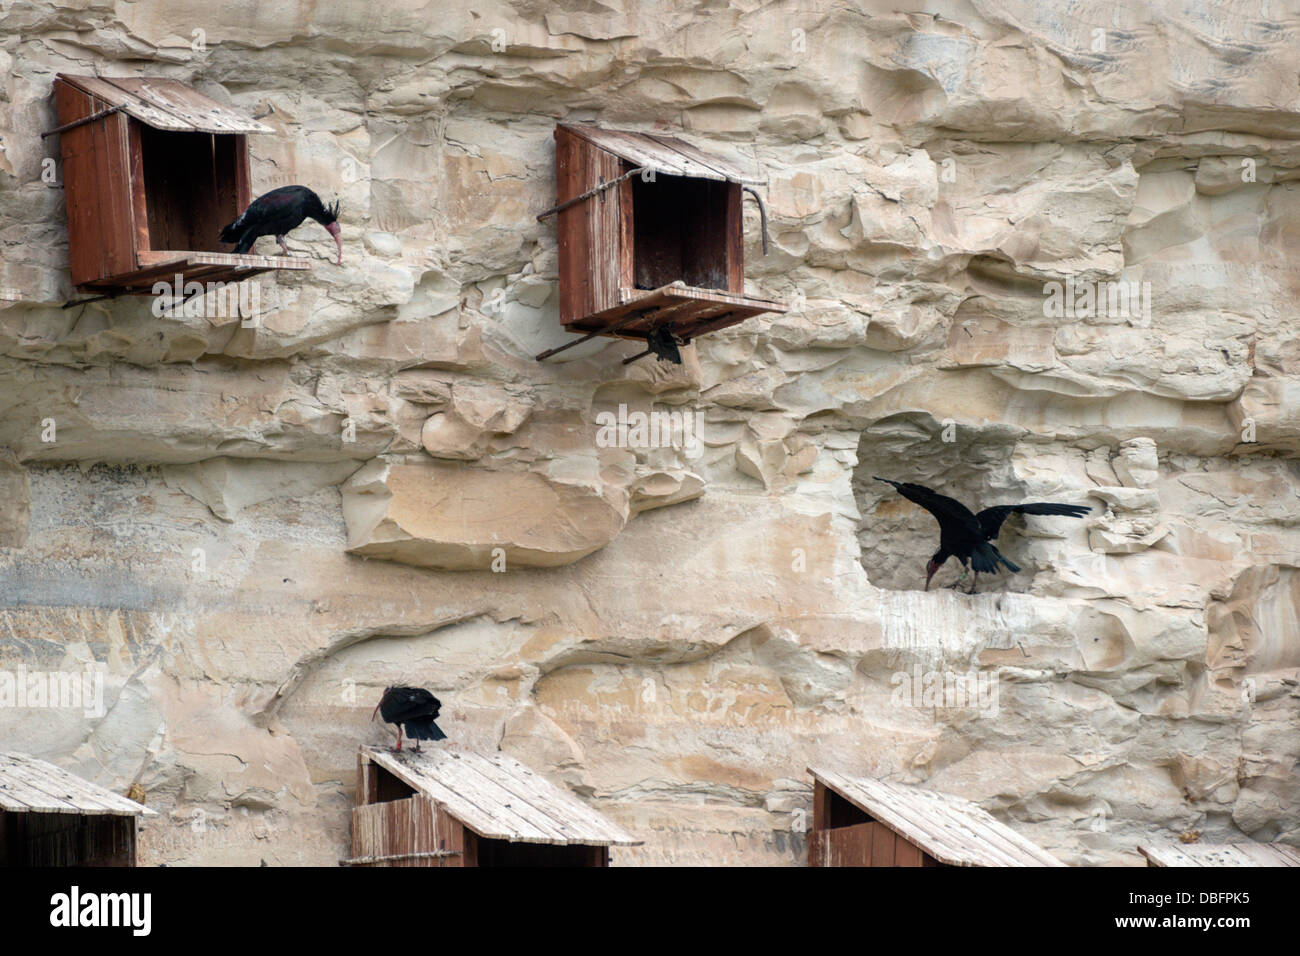 Endangered bald ibis, Geronticus eremita, rehabilitation and breeding center Gaziantep Turkey - Stock Image